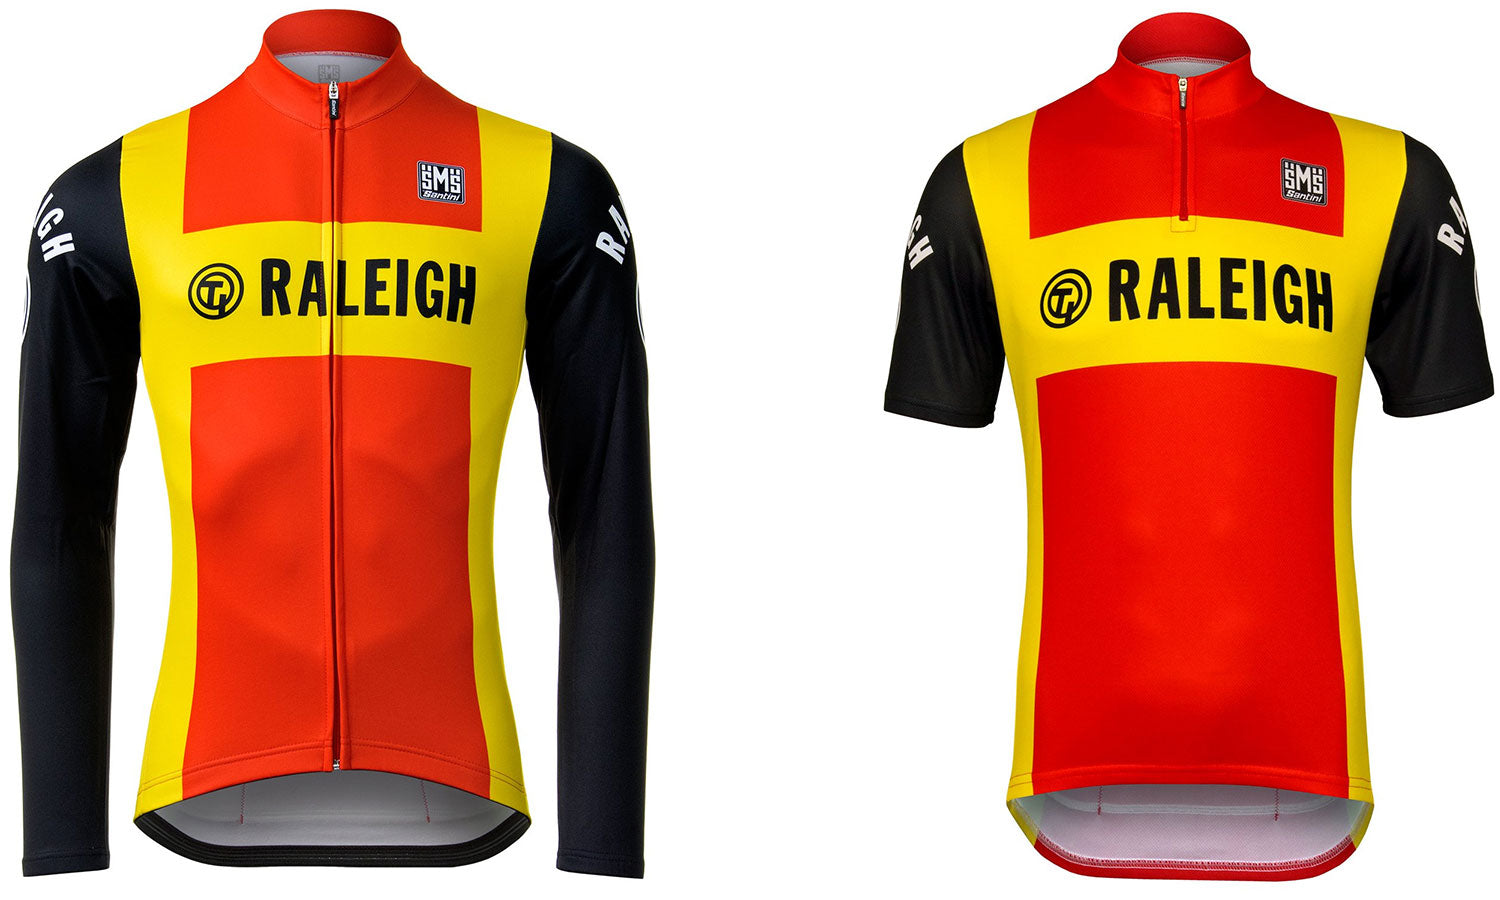 TI Raleigh cycling jerseys, caps and accessories available from Prendas Ciclismo